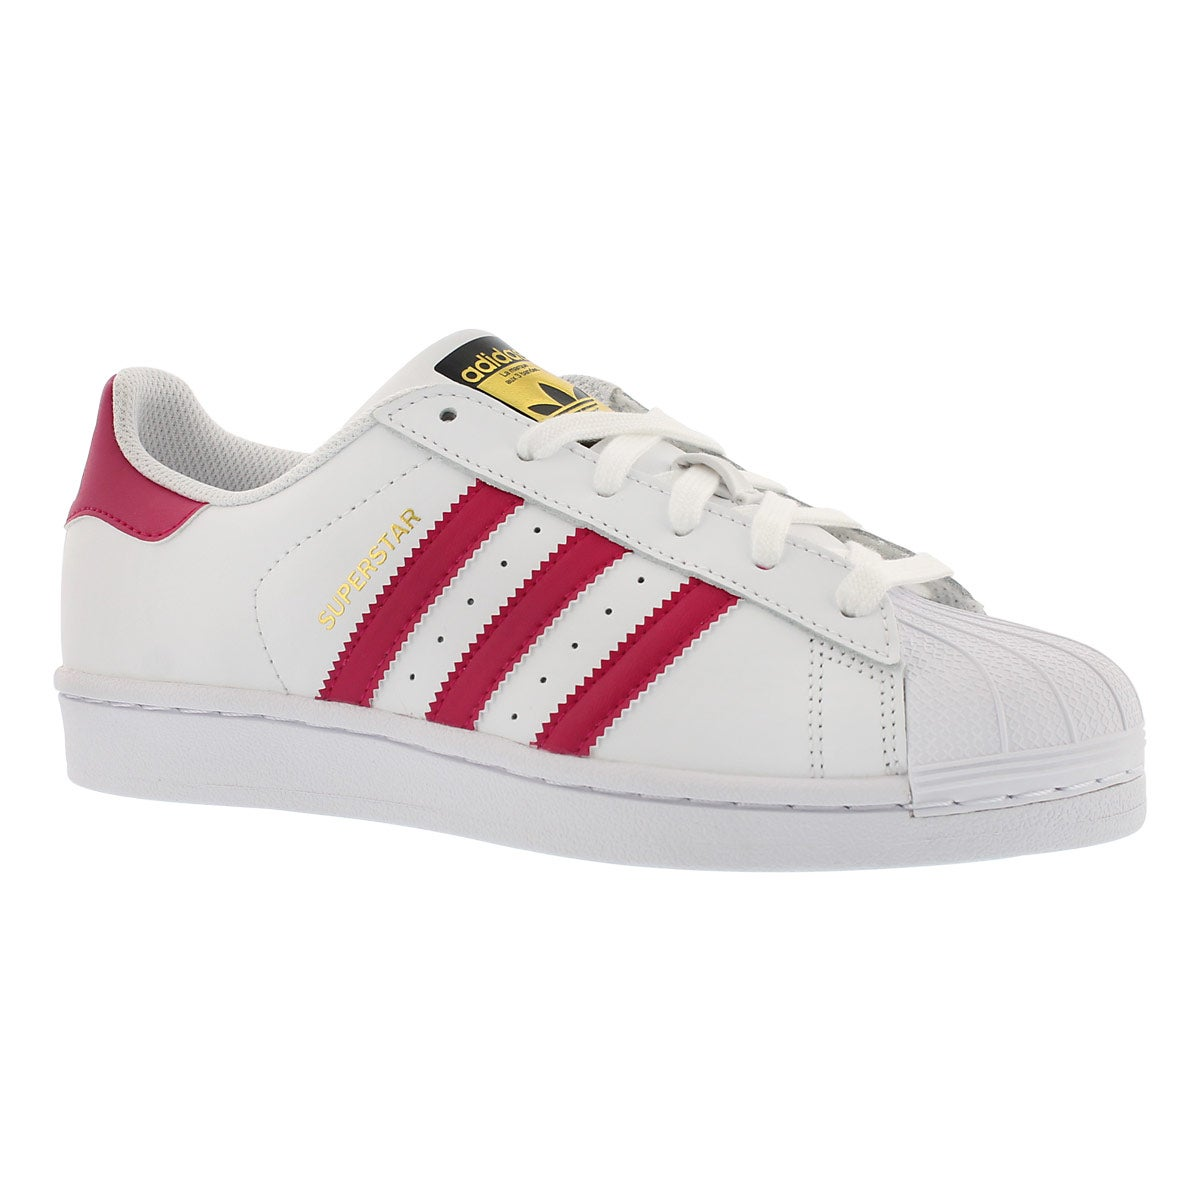 Grls Superstar wht/pnk lace up sneaker